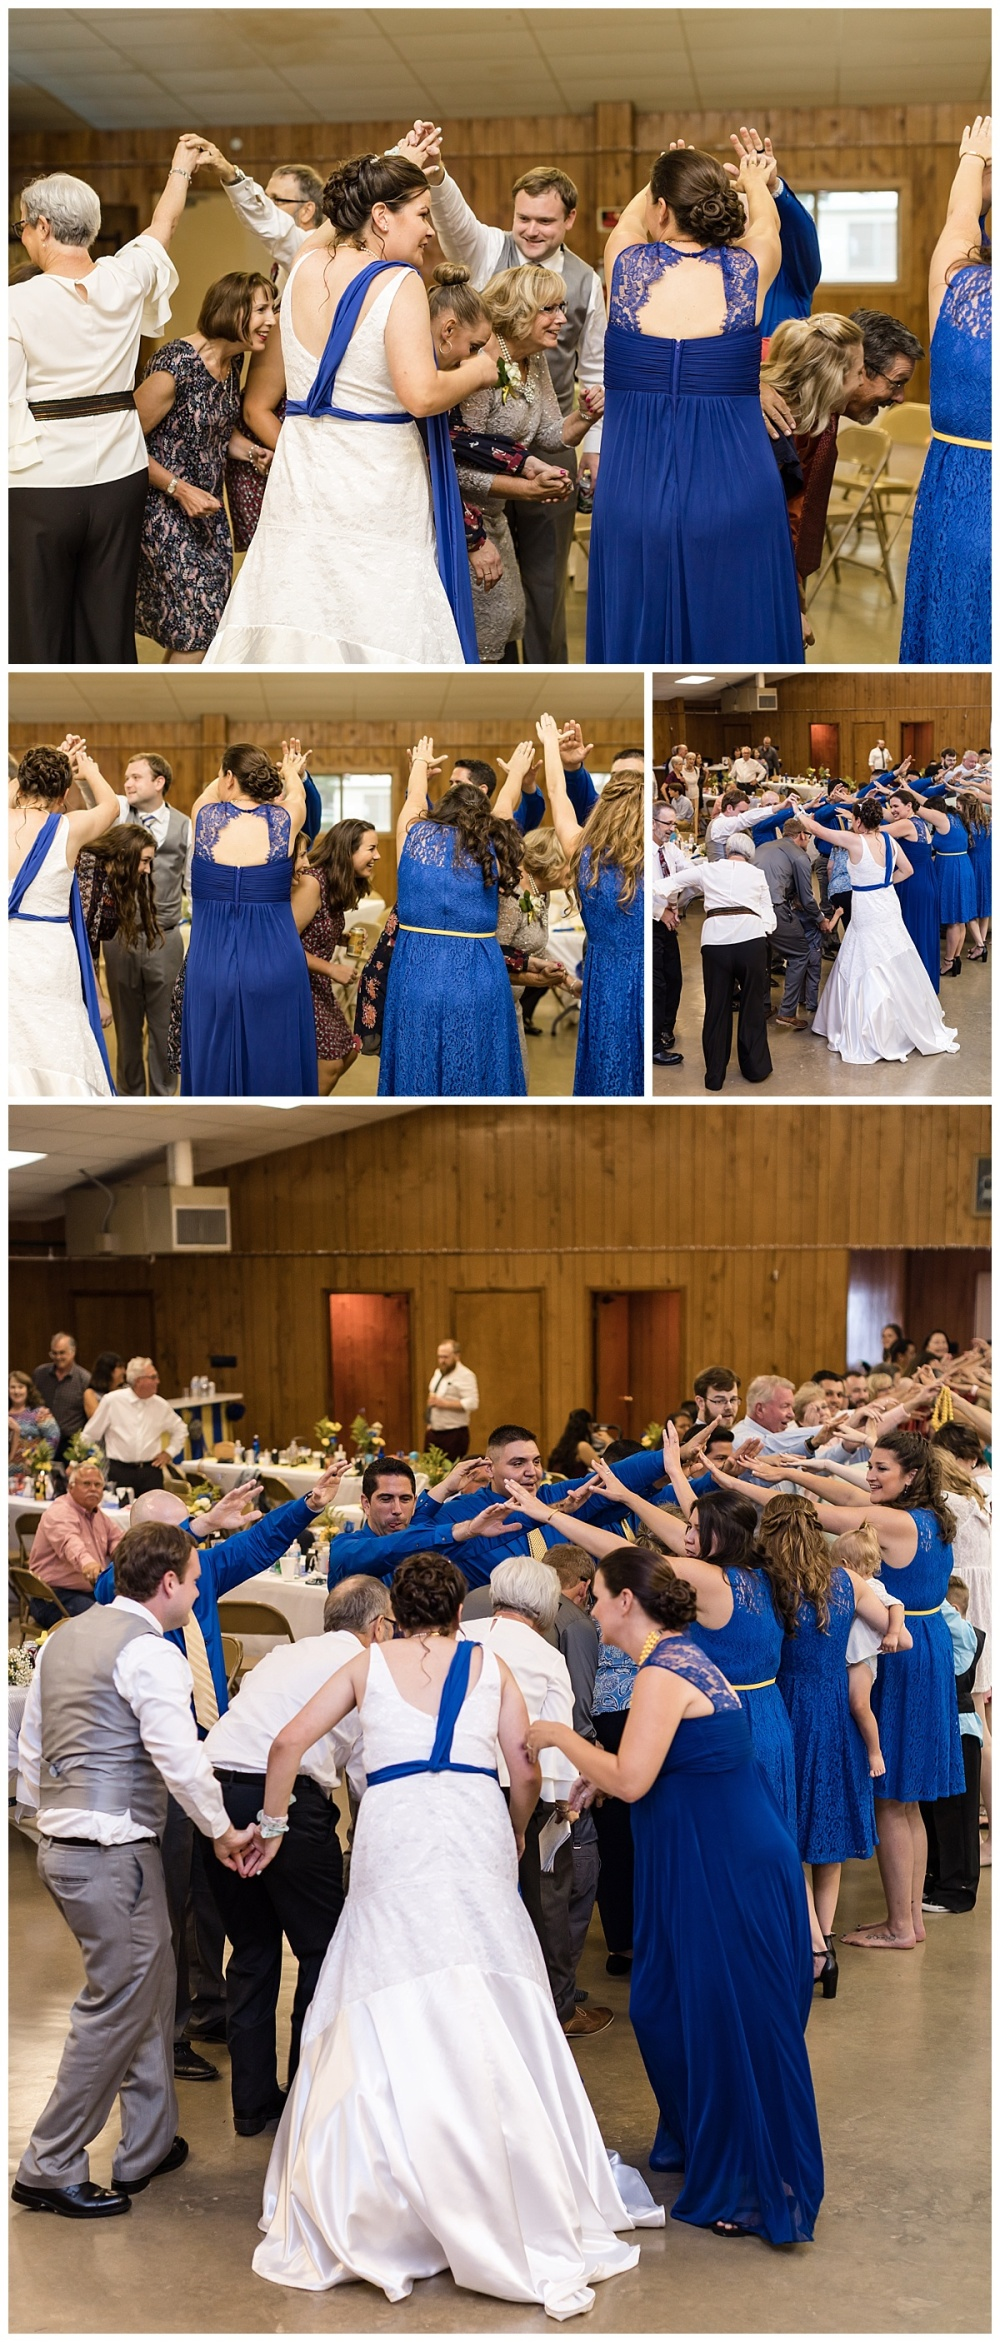 Texas-Wedding-Photographer-La-Coste-Our-Lady-Of-Grace-Church-Bride-Groom-Lego-Theme-Carly-Barton-Photography_0077.jpg